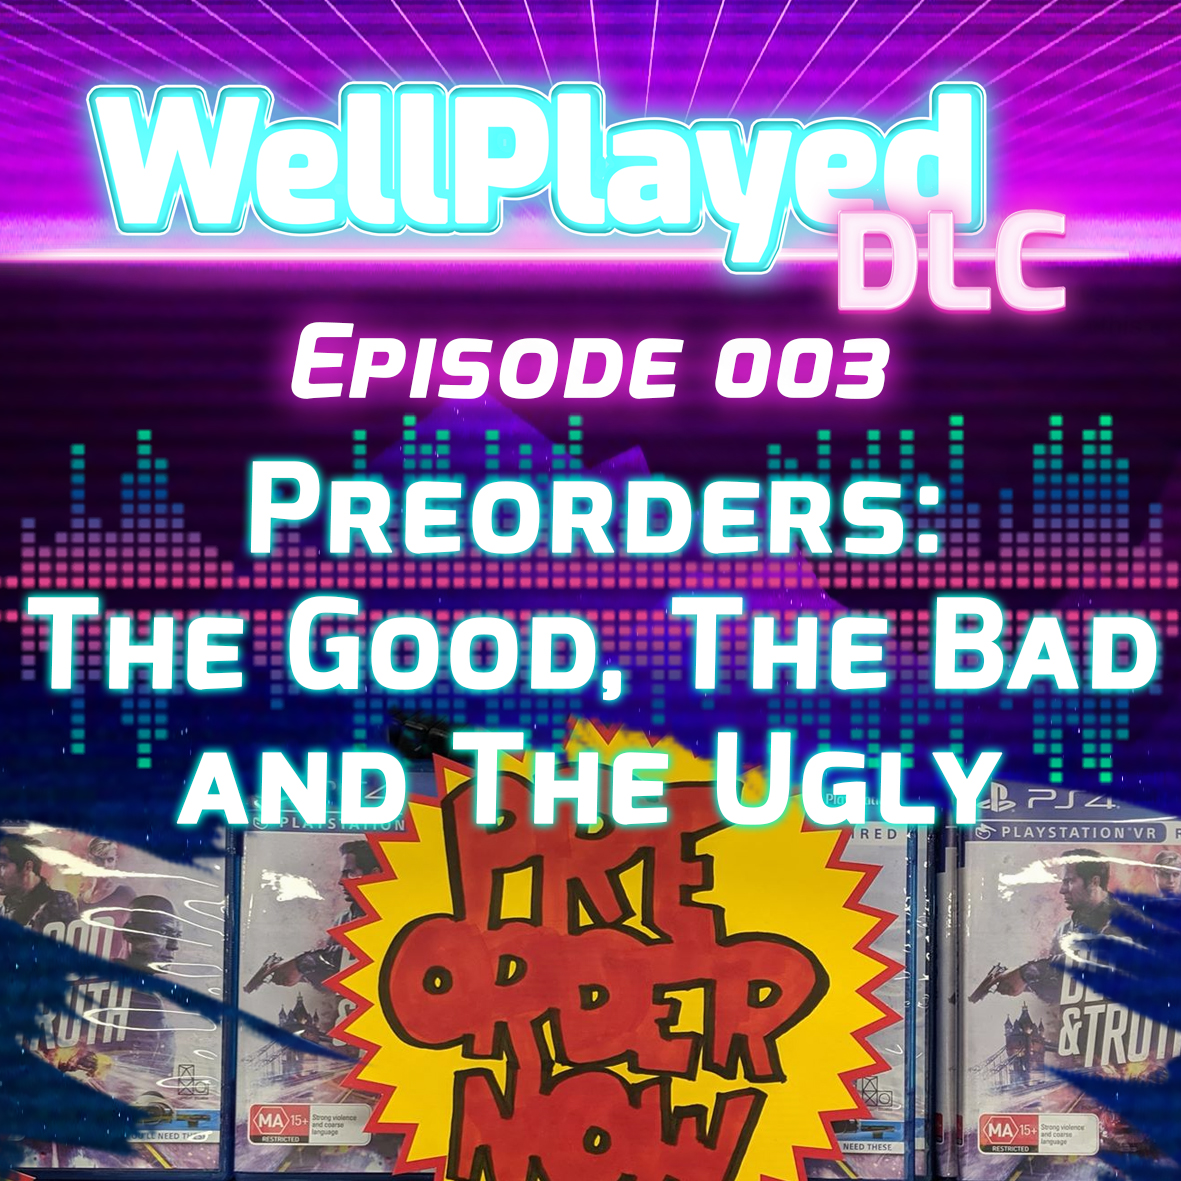 The WellPlayed DLC Podcast Episode 003 – Preorders: The Good, The Bad and The Ugly